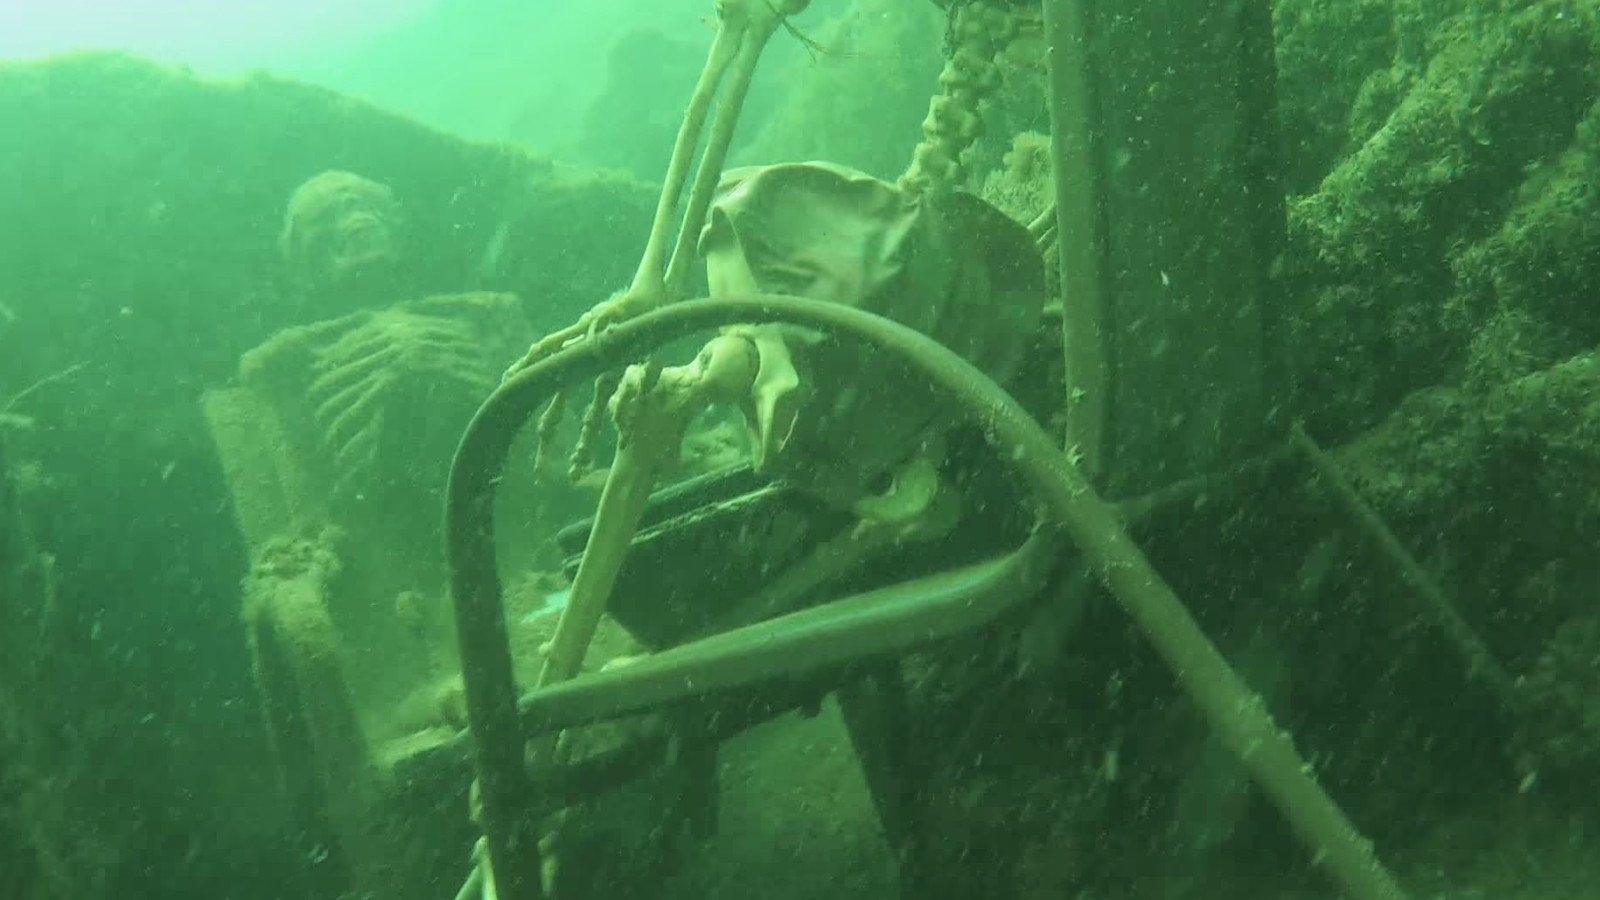 lawn chairs bean bag chair covers target underwater skeleton tea party discovered by arizona snorkeler - the verge